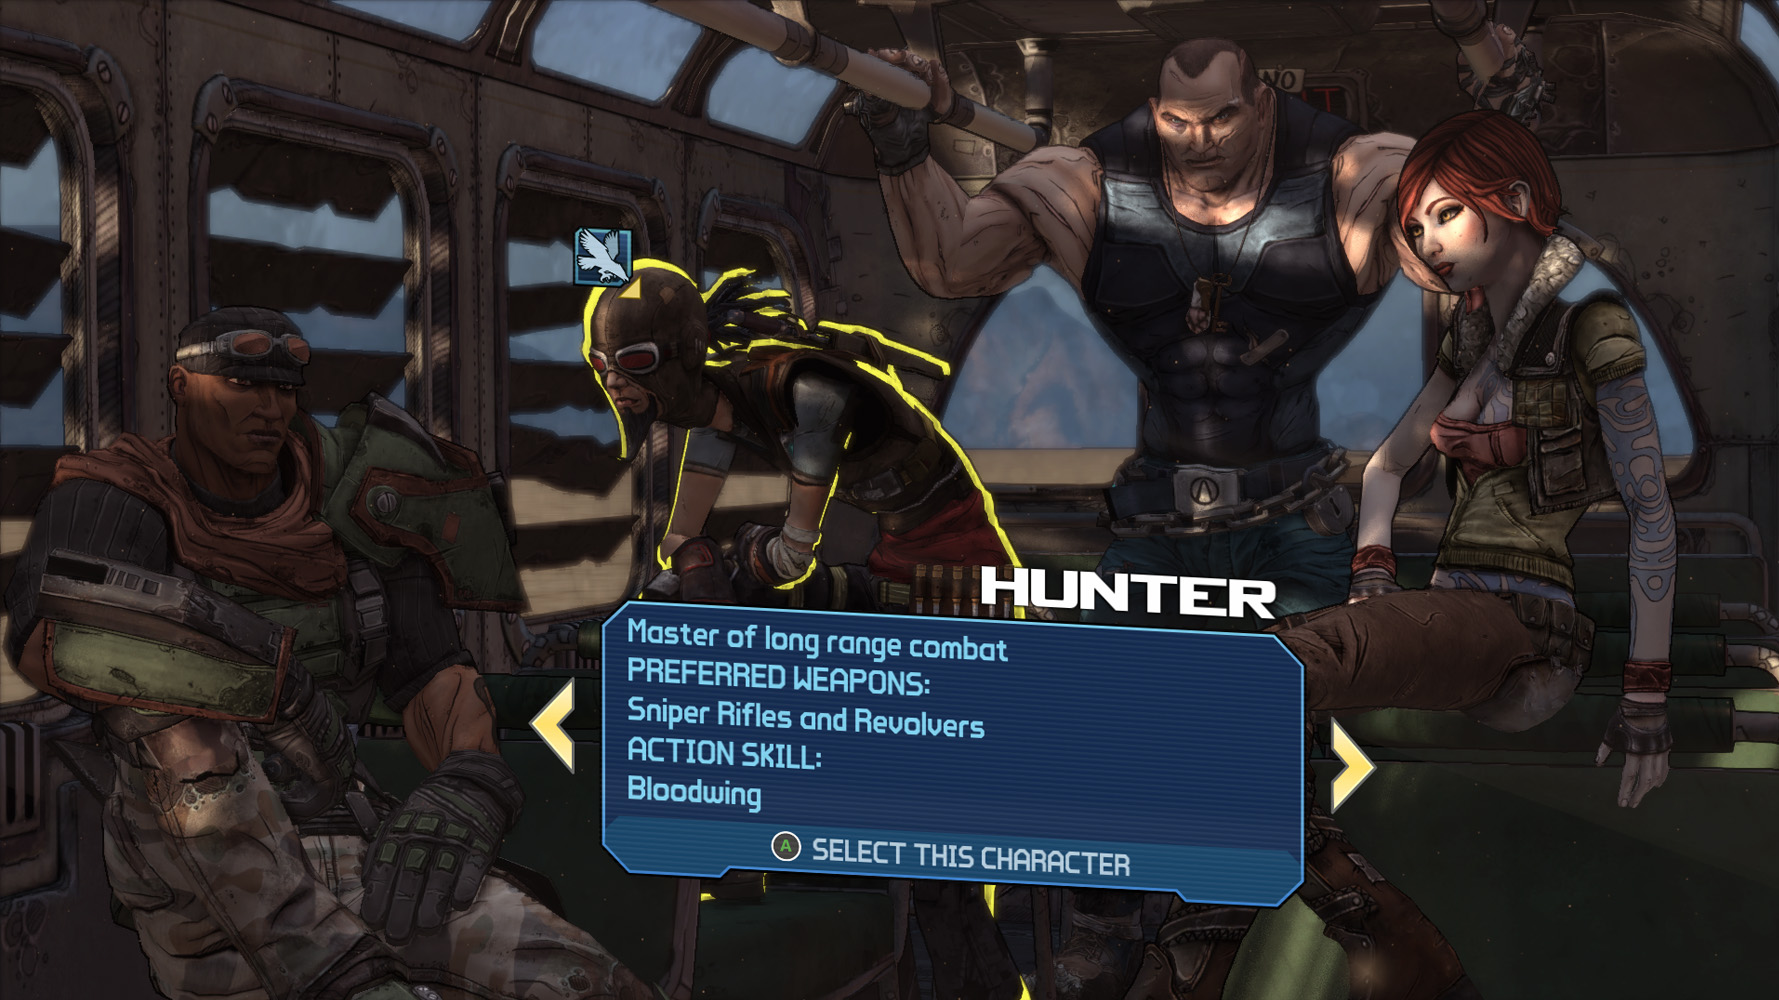 Review: Borderlands Remastered - Game of the Year Edition